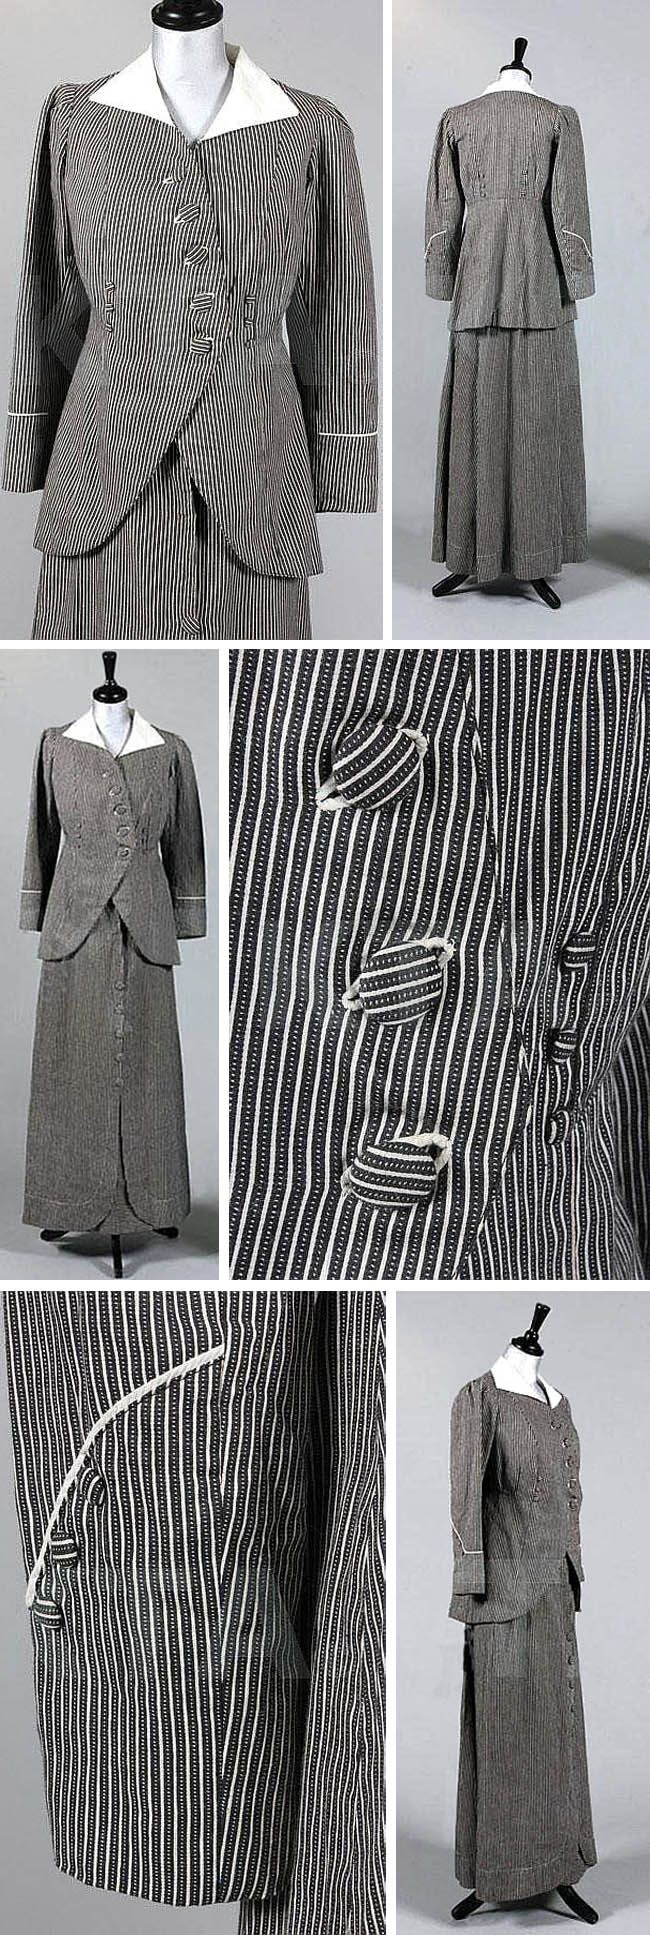 Directoire-style summer suit, A. Boucicaut for Au Bon Marché, ca. 1911. Black & white ticking with piqué collar, the jacket cut away at the front like a man's tailcoat with striped, self-covered buttons to fasten and 3 smaller ones at raised waist level. A-line skirt with buttons down back. Kerry Taylor Auctions/Invaluable